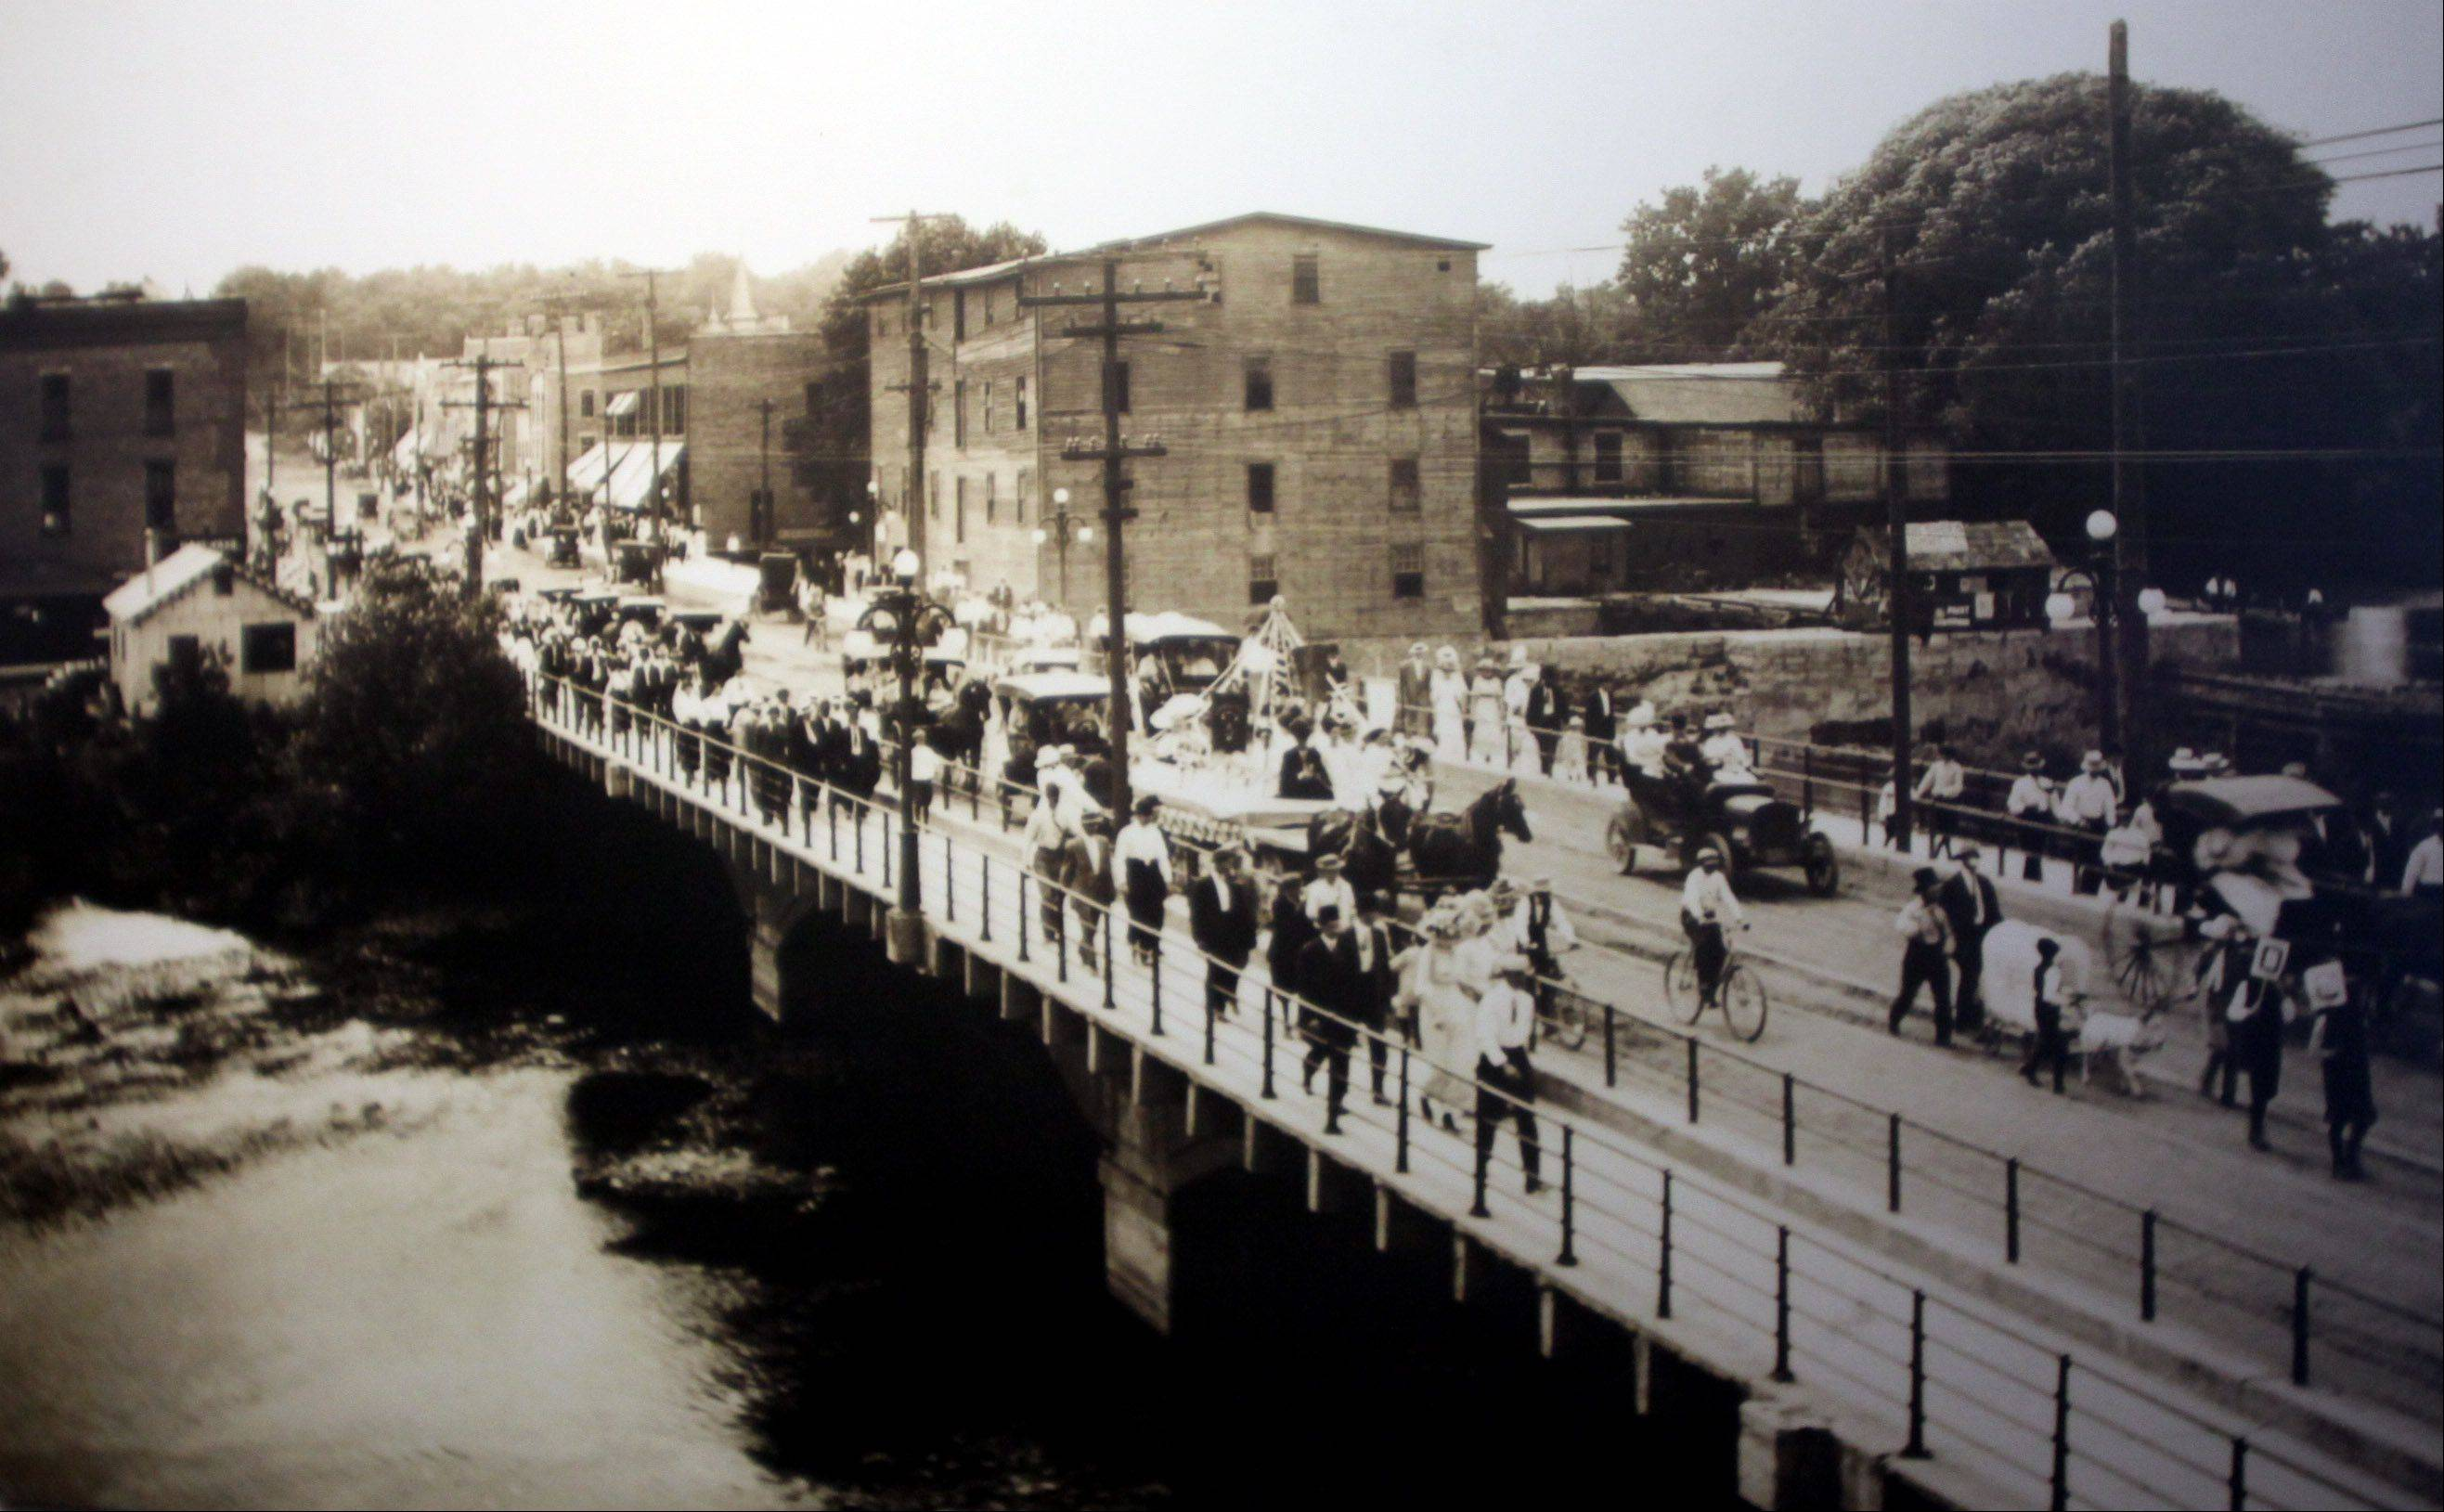 Main Street in St. Charles is pictured in this 1910 image. The Fox River can be seen in the foreground.